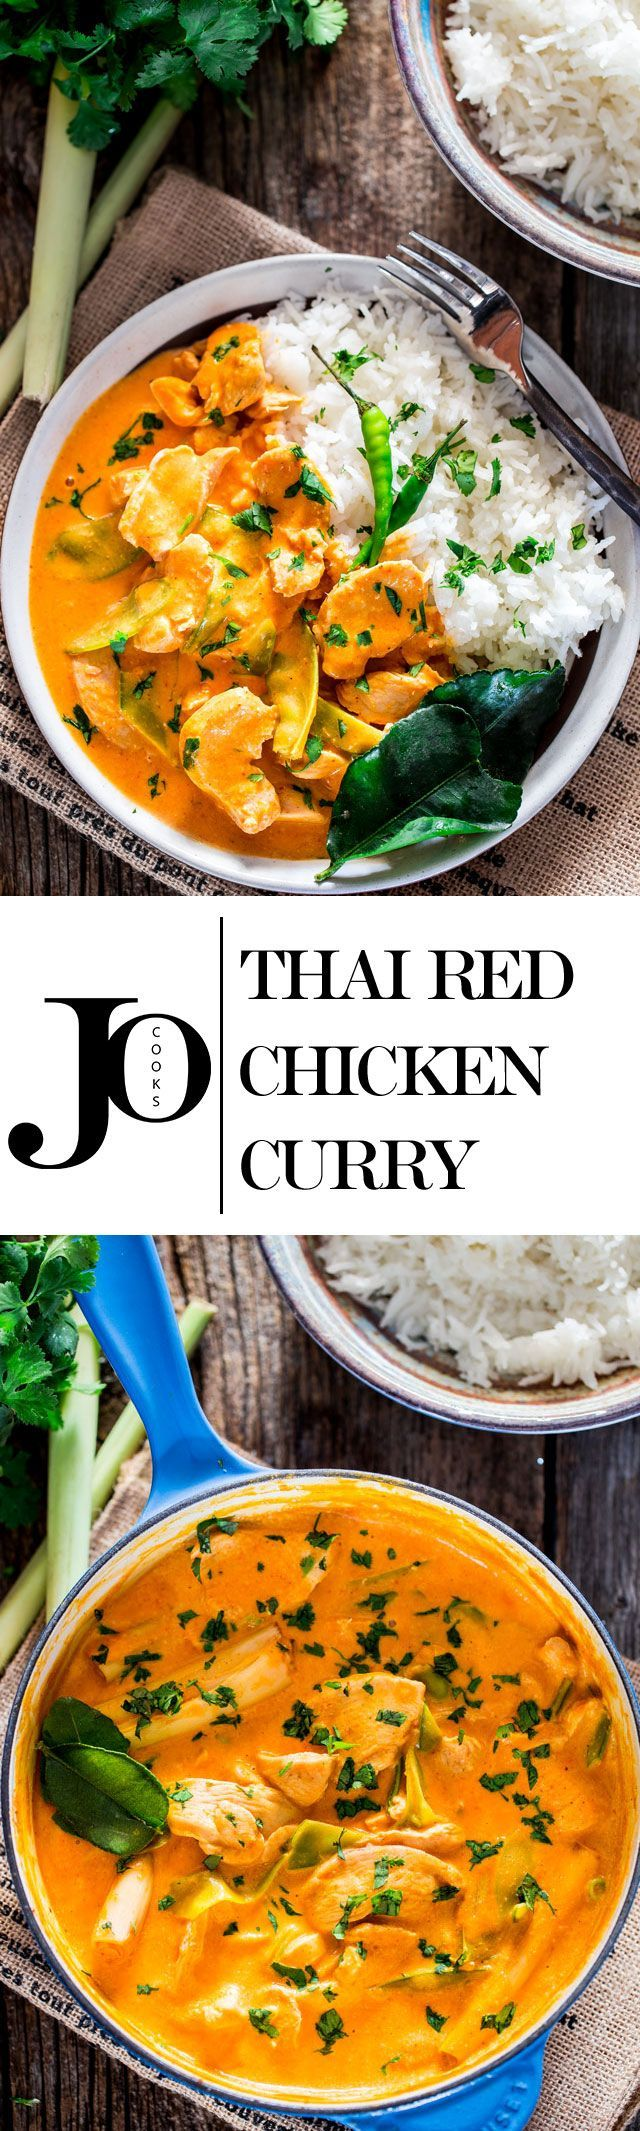 This Thai Red Chicken Curry is incredibly delicious, so easy to make with bite size chicken pieces, snow peas and simmered in a red curry and coconut milk sauce. Thai cooking in under 30 minutes and all in one pot!